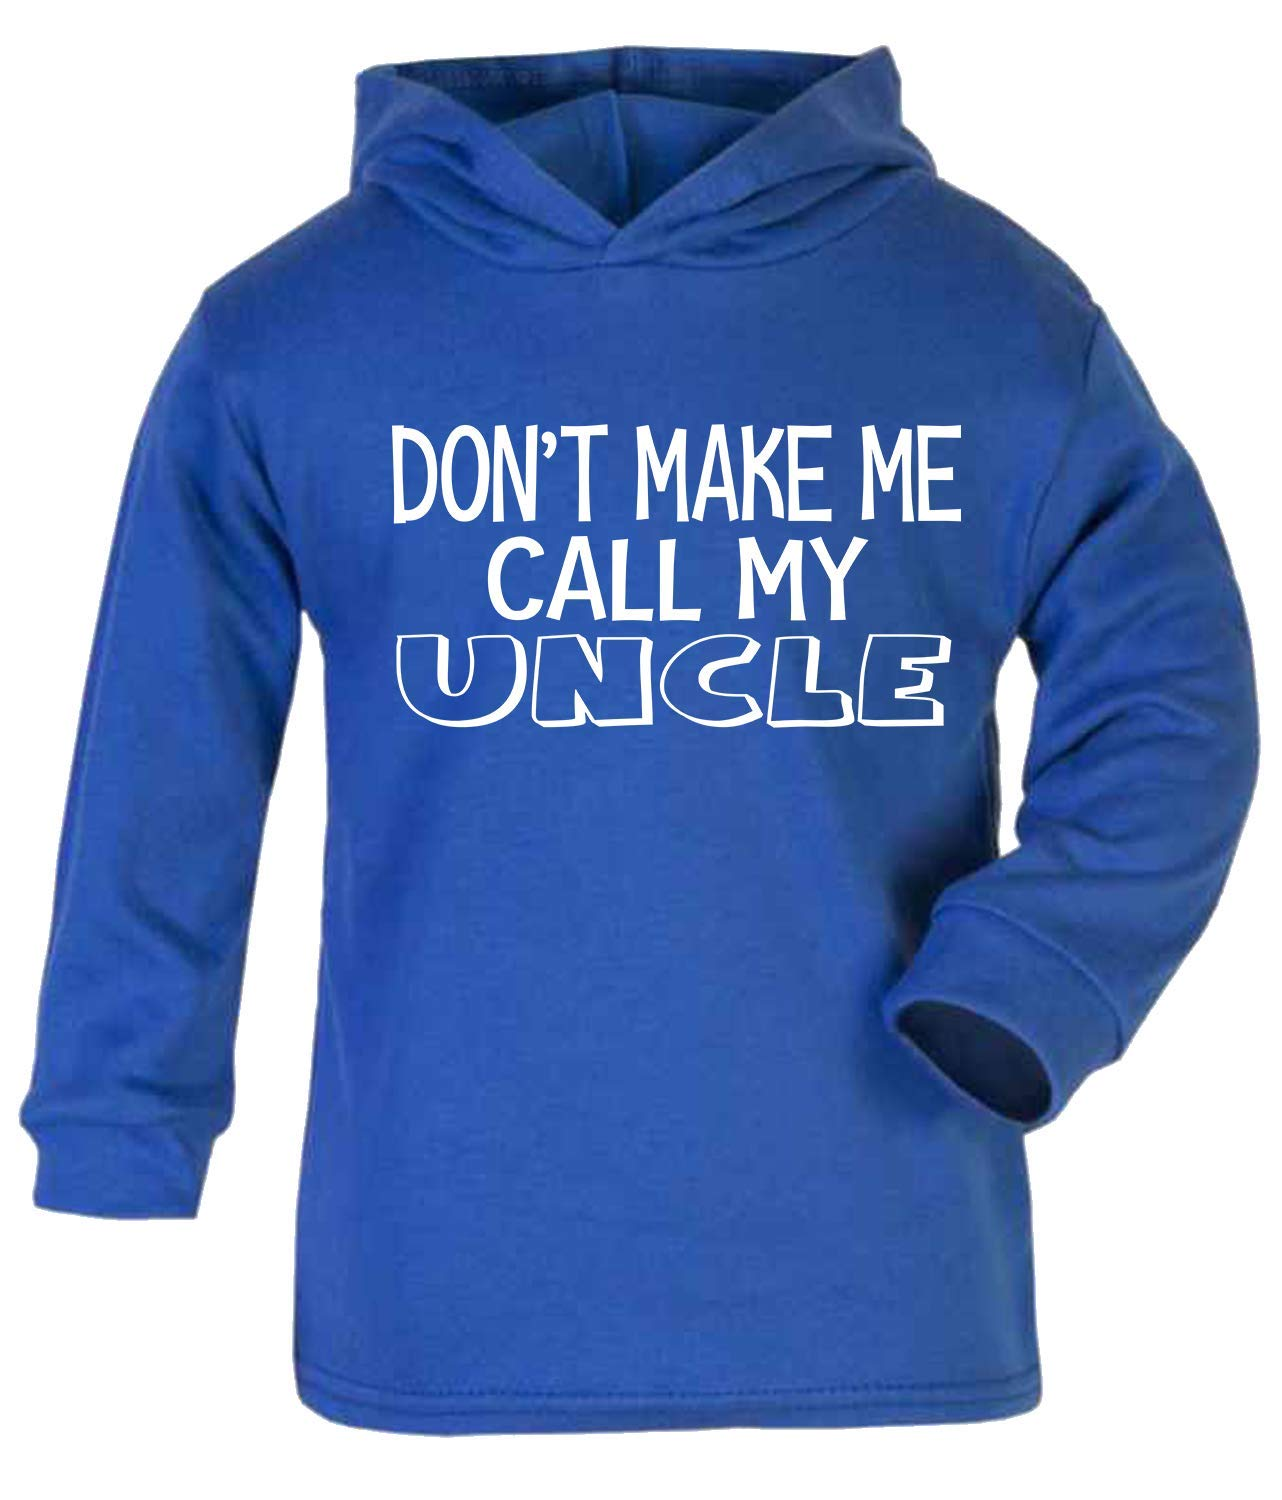 Don't Make me Call My Uncle Baby Hoodie Top Long Sleeved T-Shirt Baby Shower Gifts New Uncle Gift Blue (1-2 Years) ICKLE PEANUT